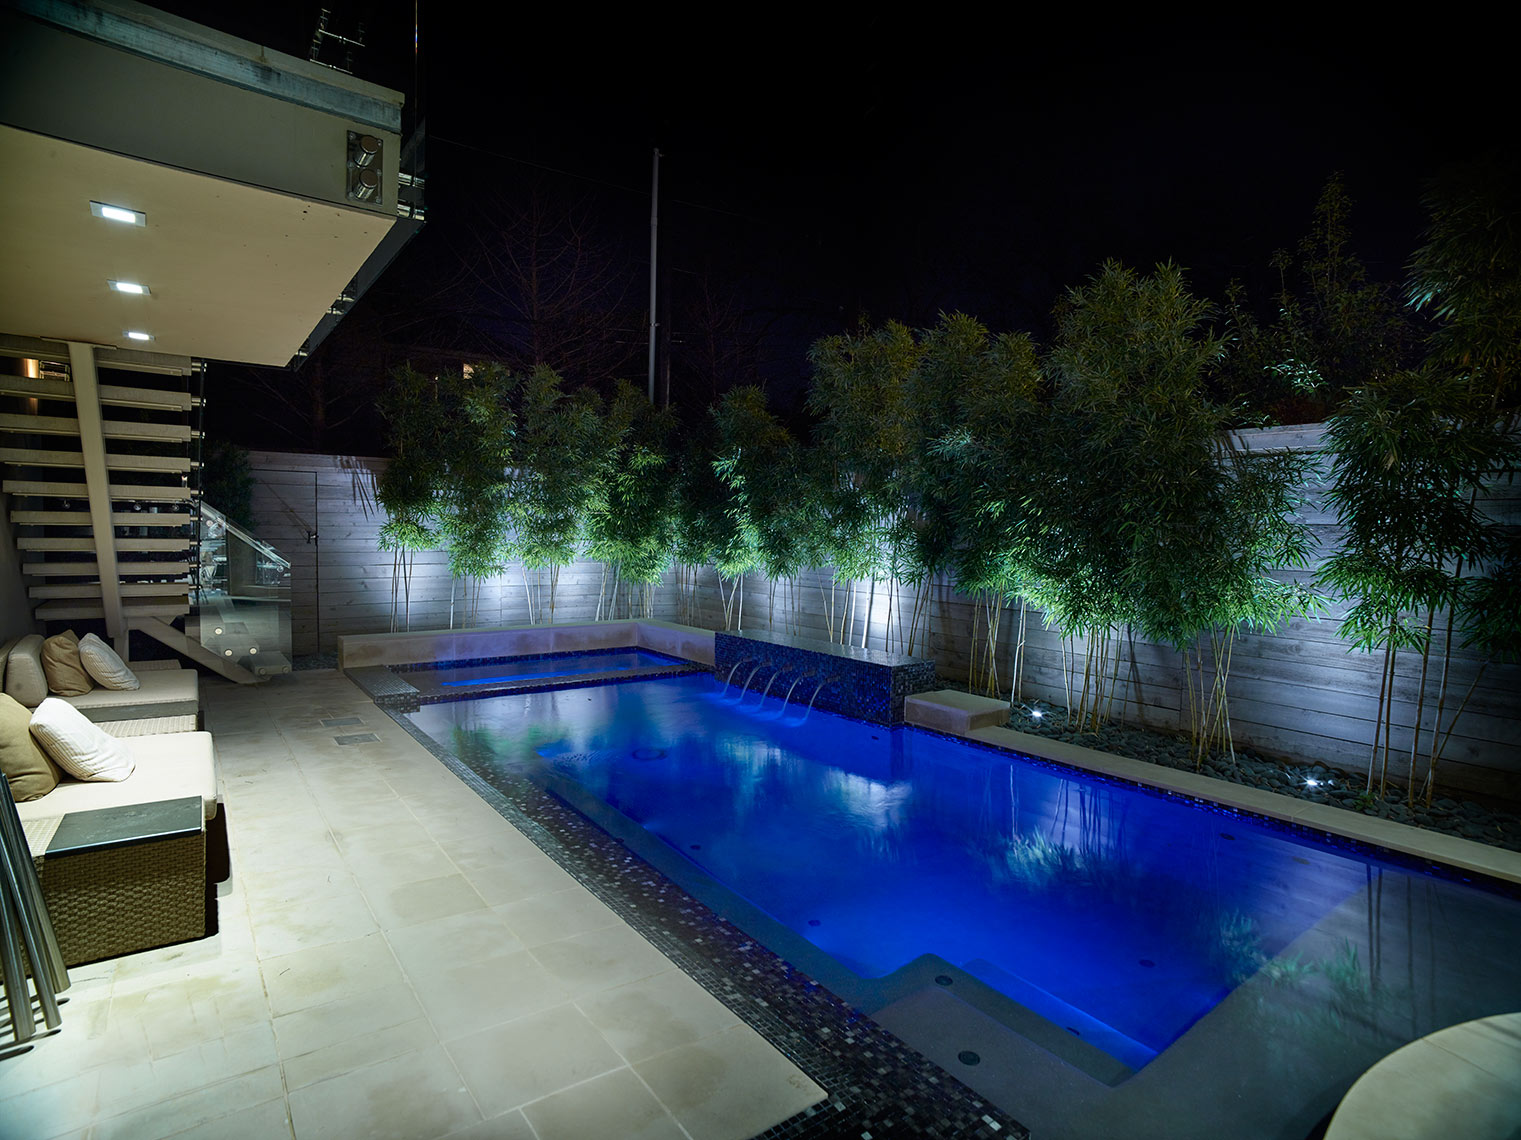 night view of outdoor lighted pool area